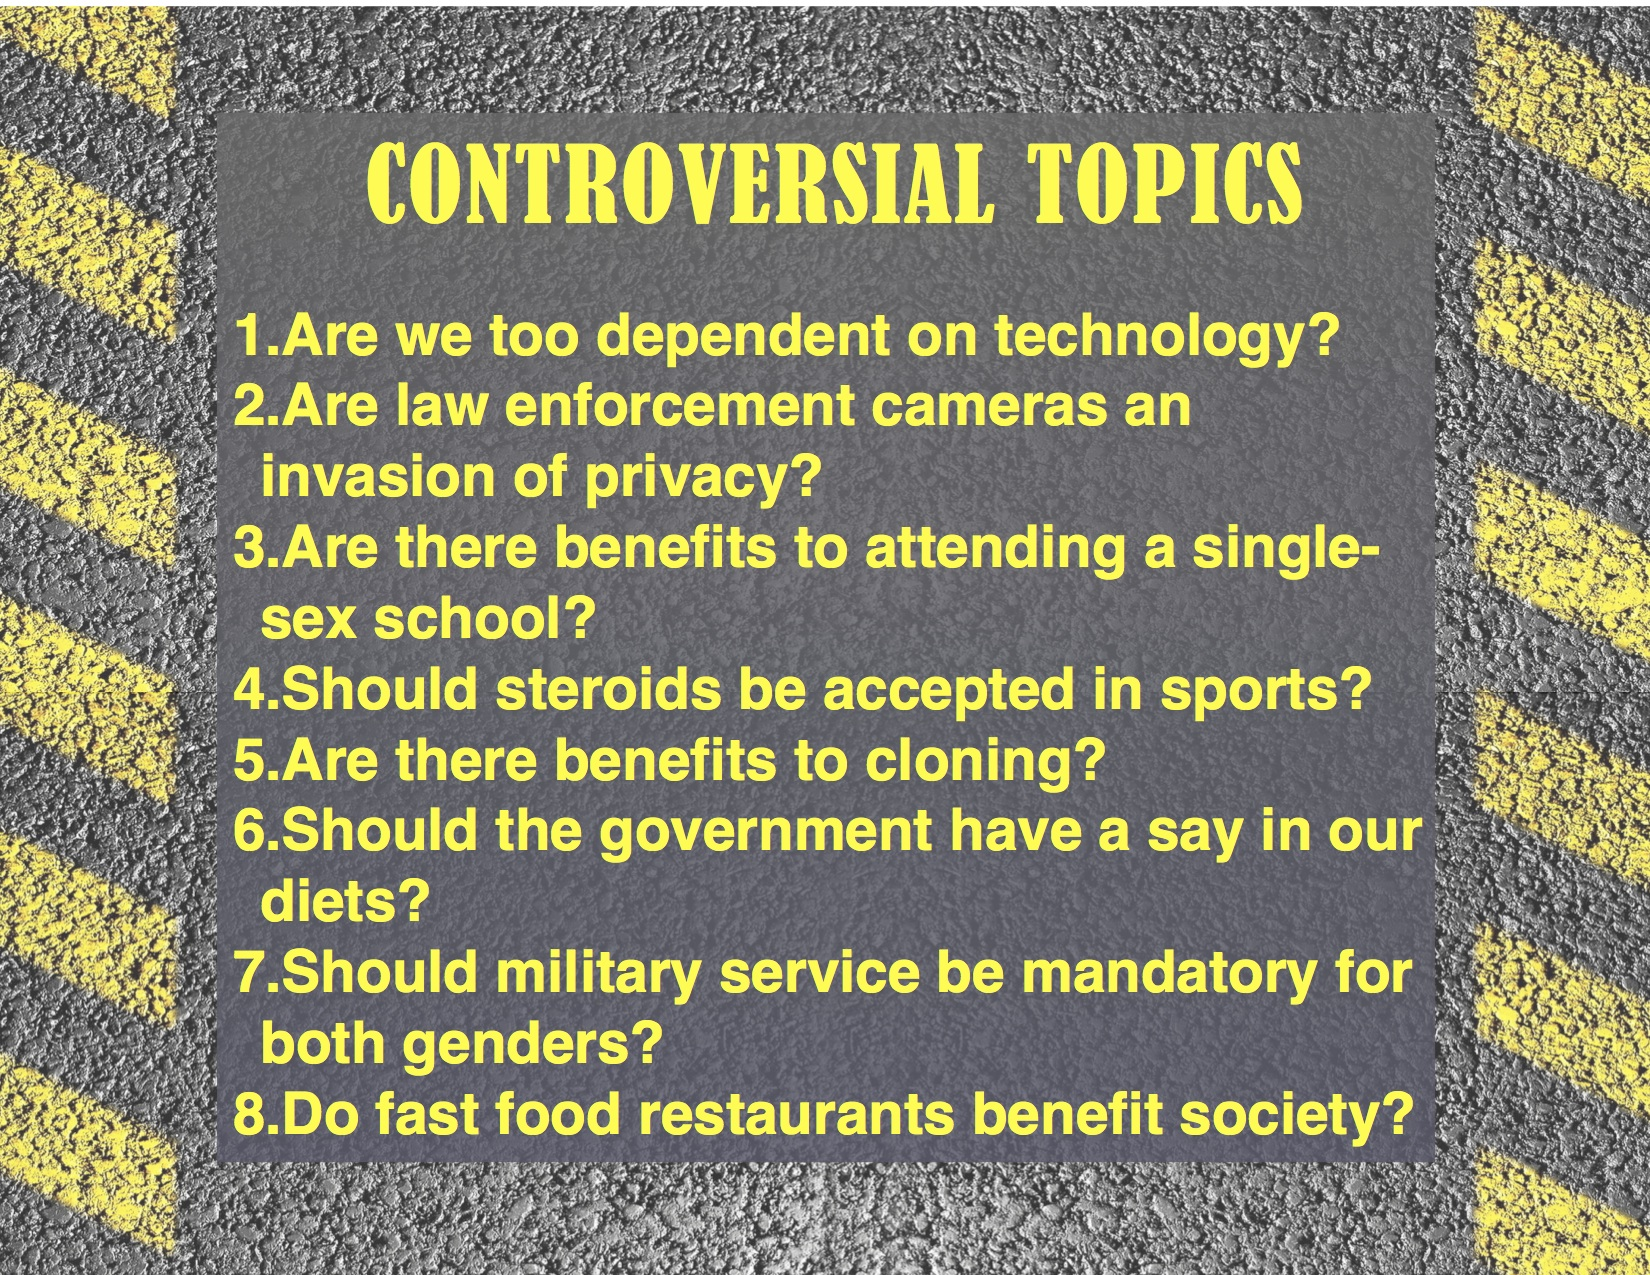 what are subjects controversial research paper topics list